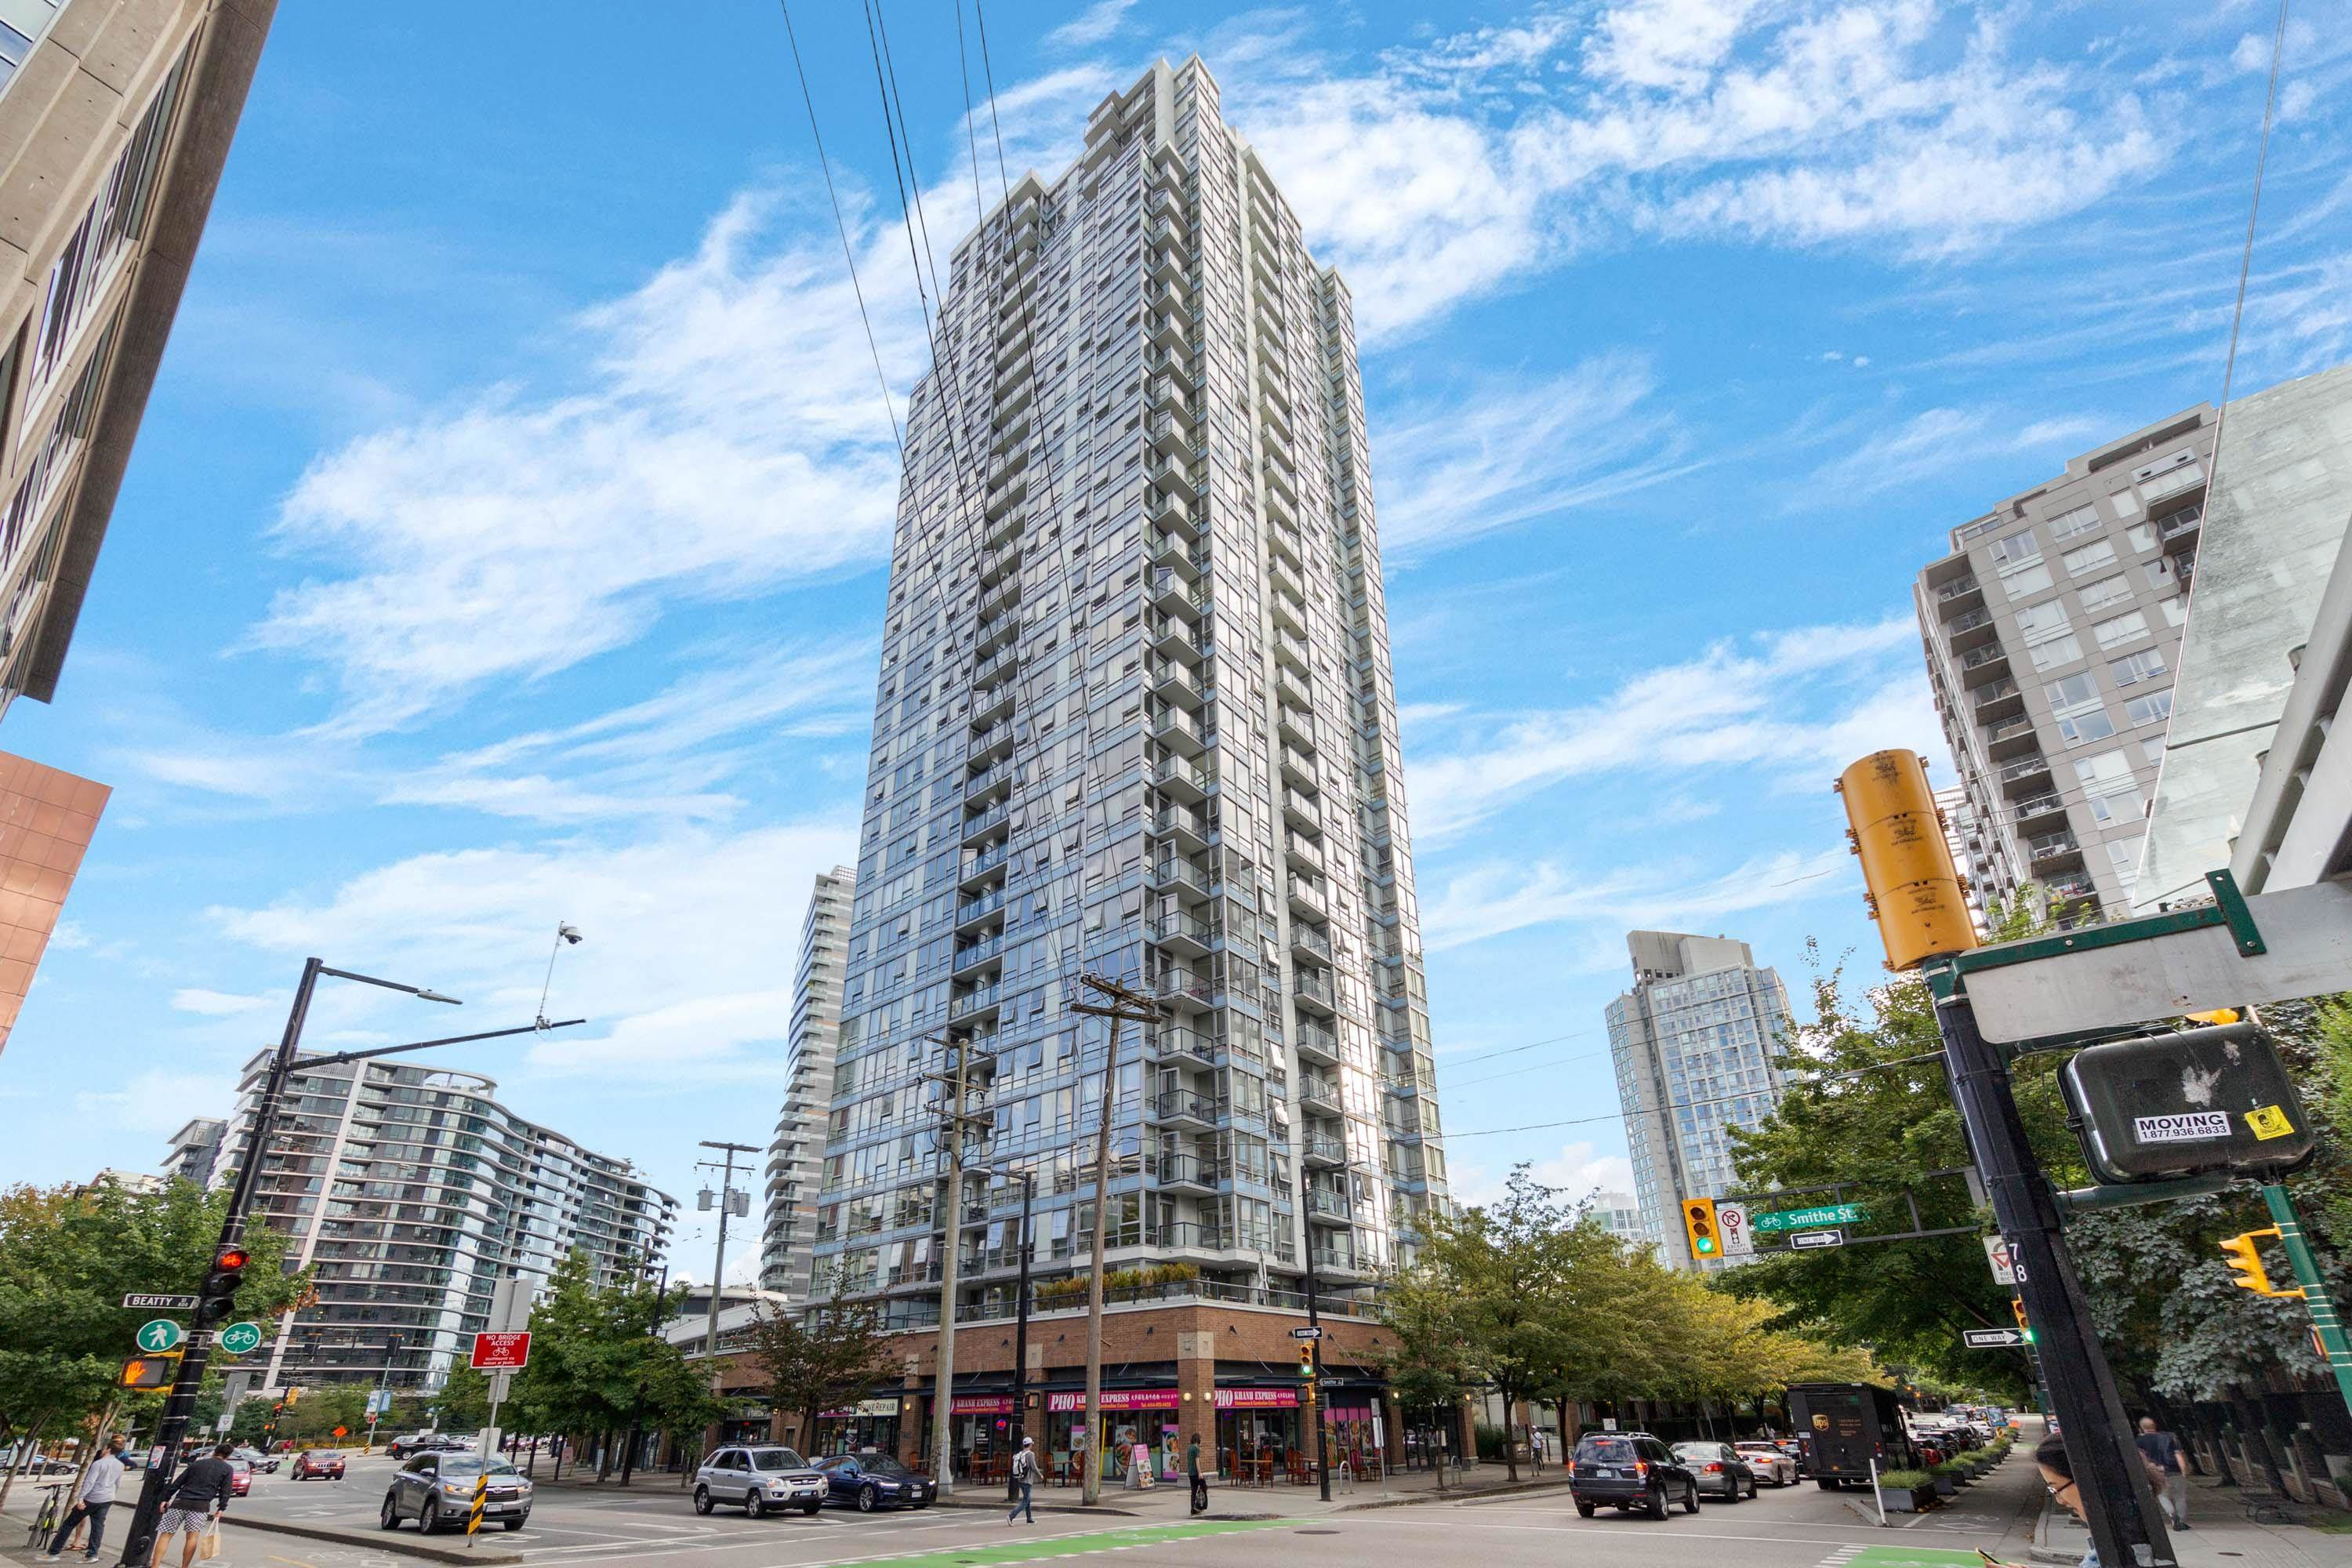 1709 928 BEATTY STREET STREET - Yaletown Apartment/Condo for sale, 1 Bedroom (R2628055) - #1